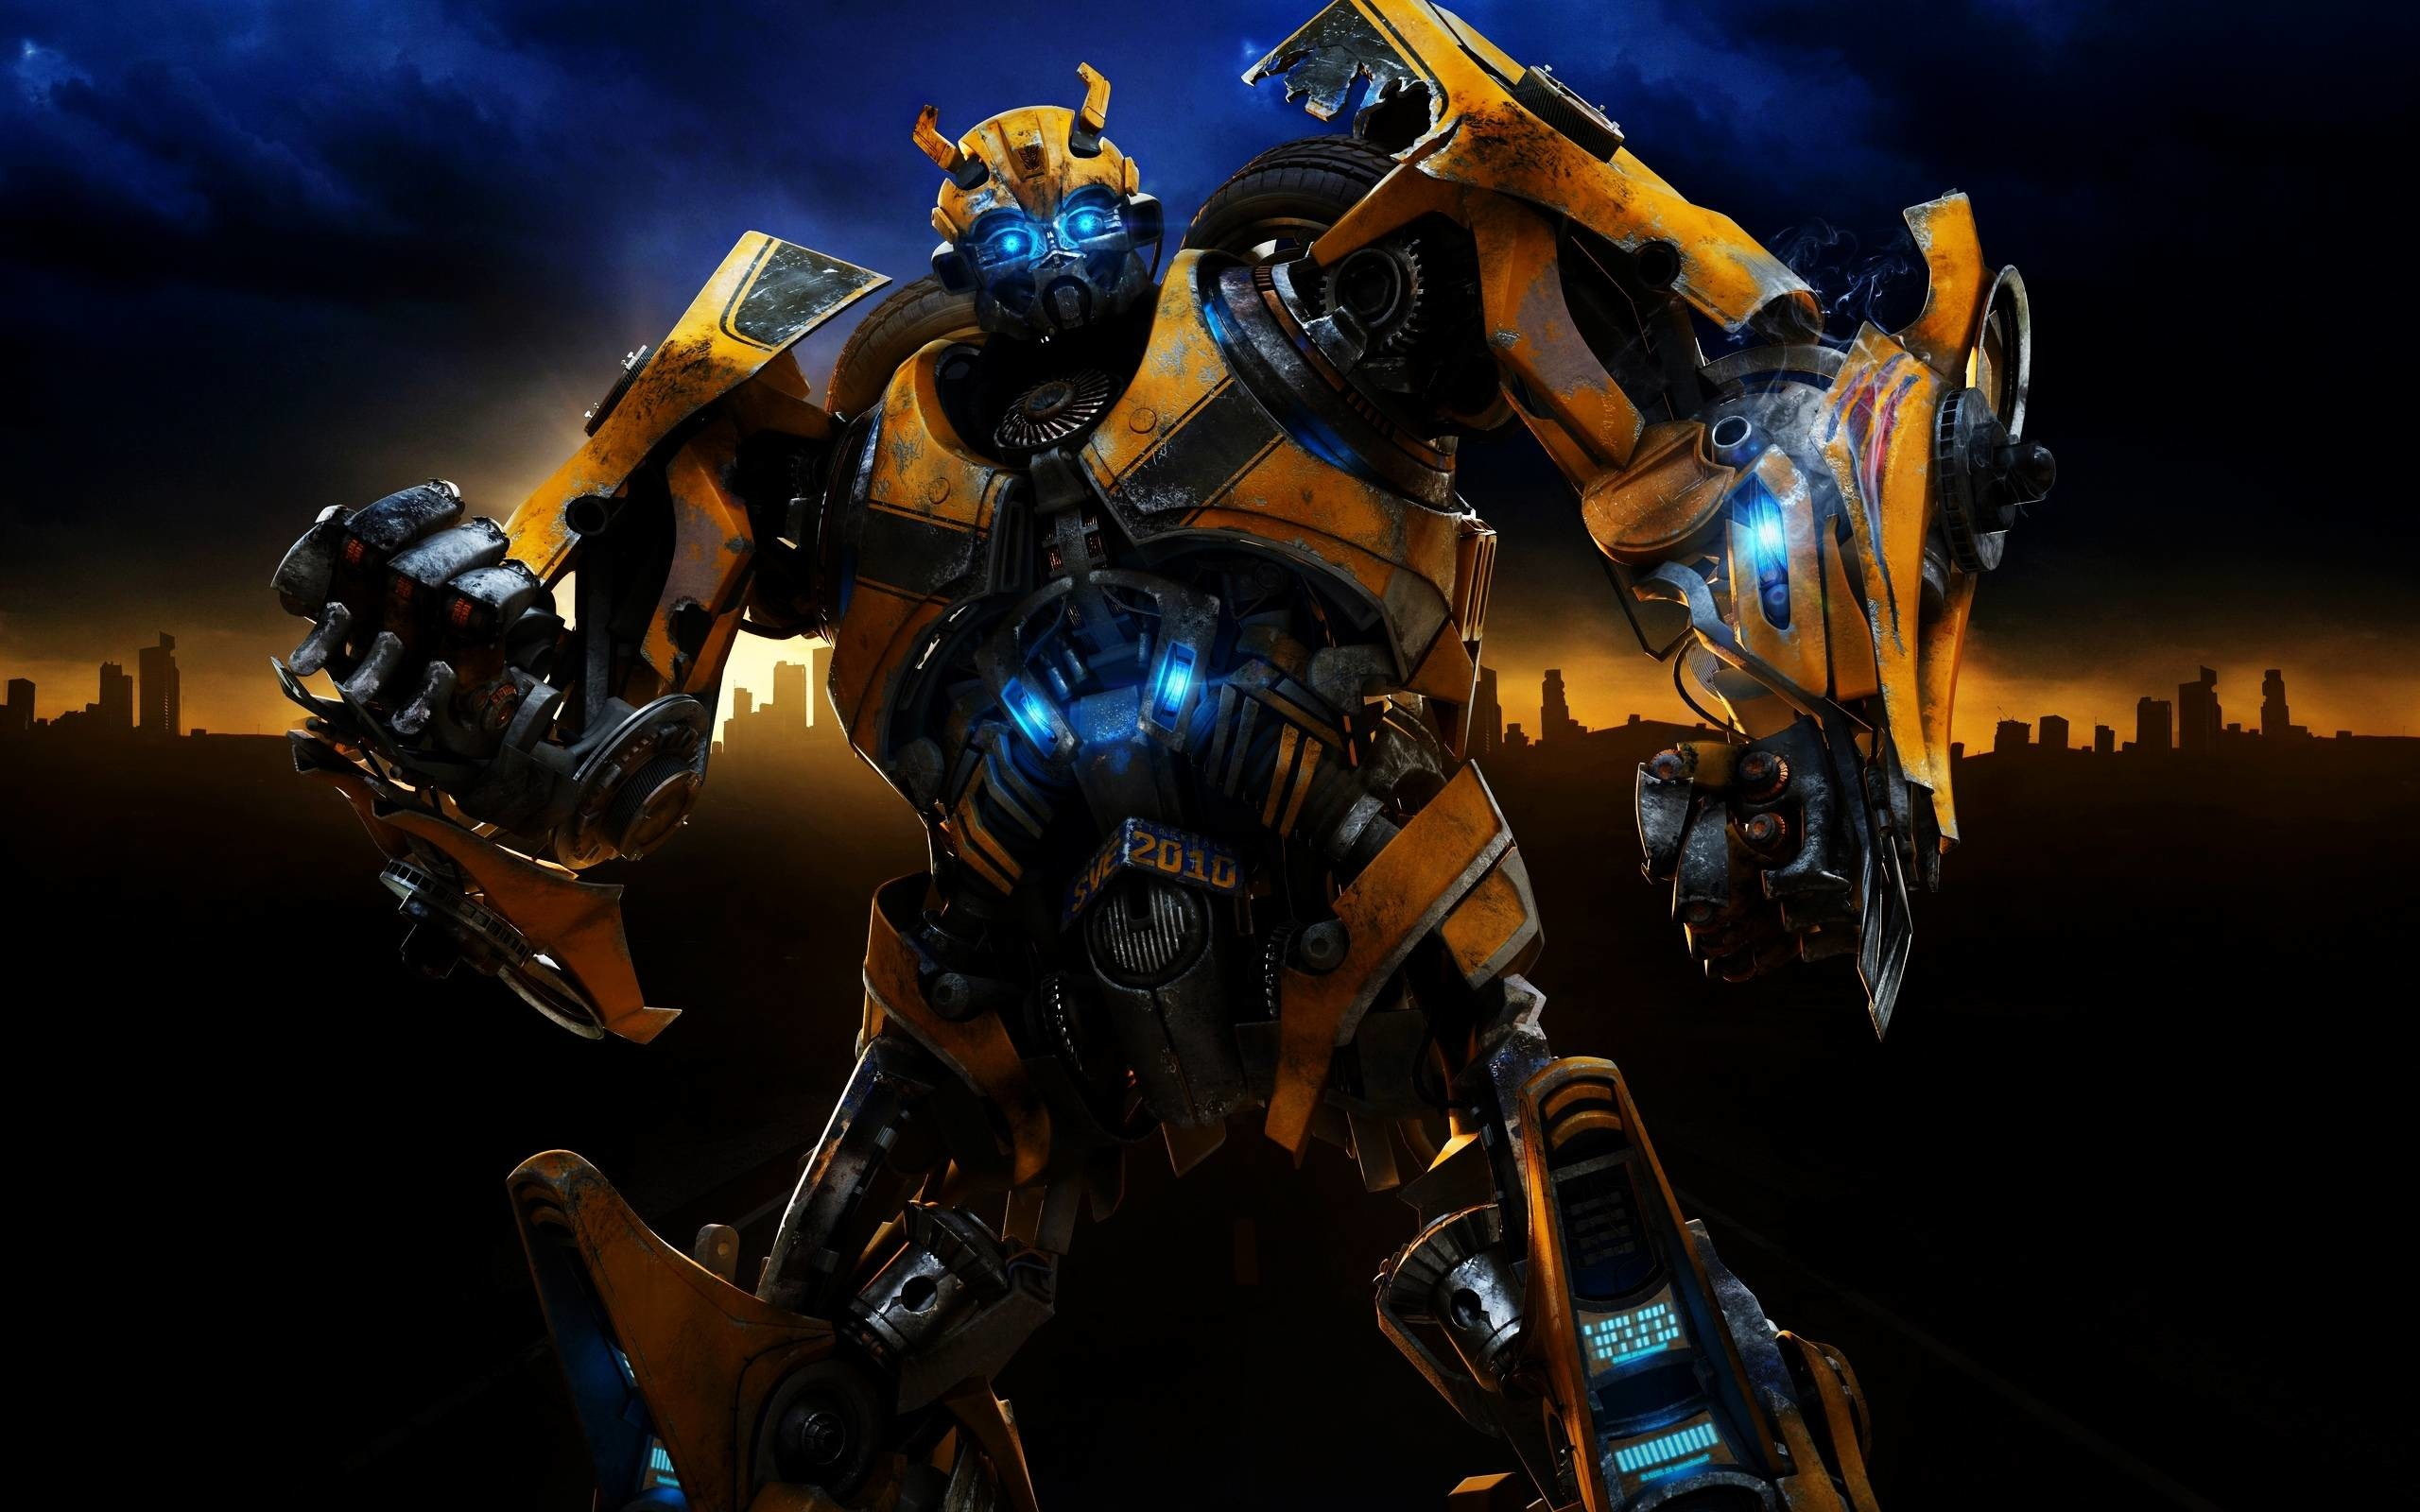 transformers movie hd